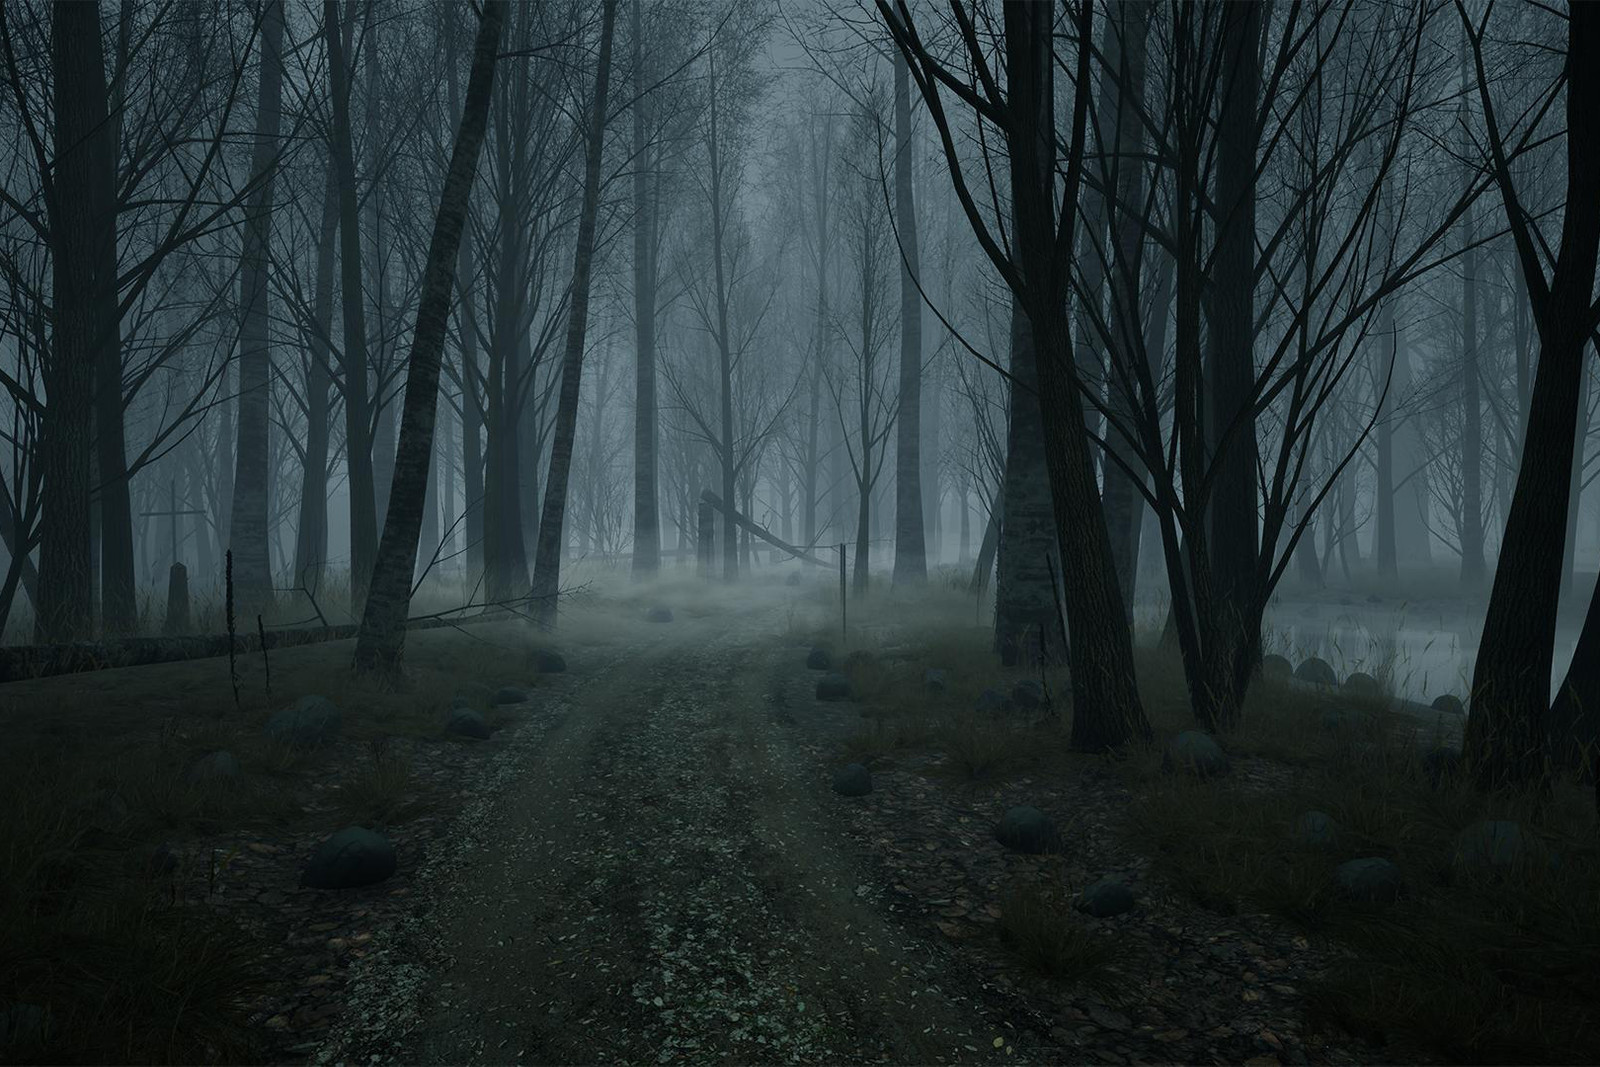 Halloween Scary Stories Ghosts Spooky Horror Paranormal Scary Spirits Experiences Tales Shadows Reader Submissions